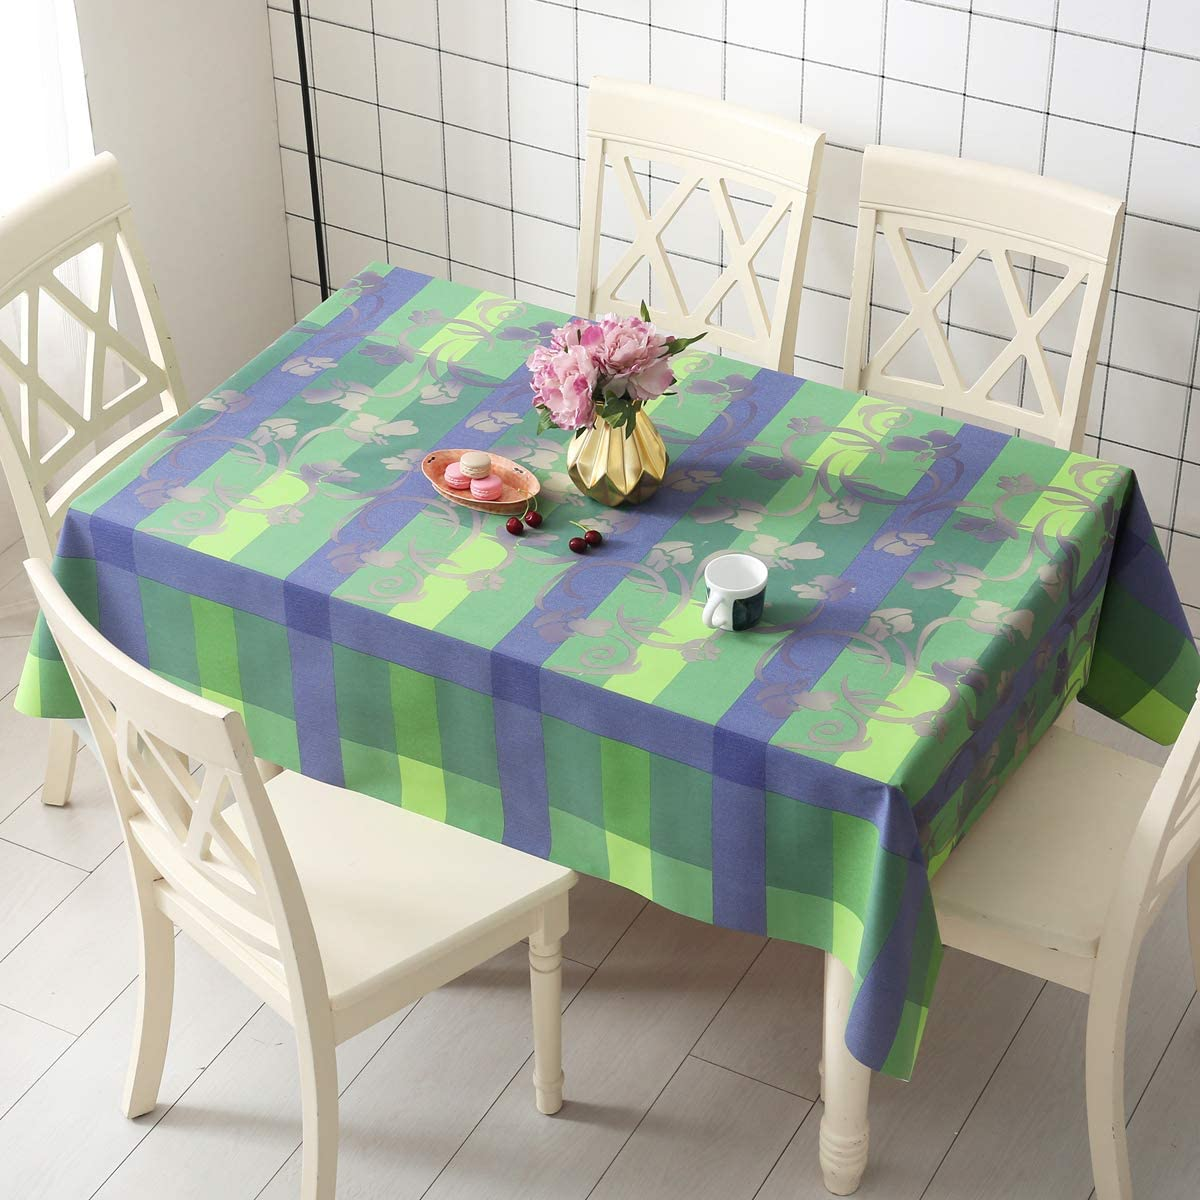 DUOFIRE Vinyl Tablecloth Rectangle Wipe Clean Table Cover Waterproof Stain Resistant Oil Proof Spill Proof Heavy Weight PVC Tablecloths 137x137cm 54 x 54 inch Color-no.015